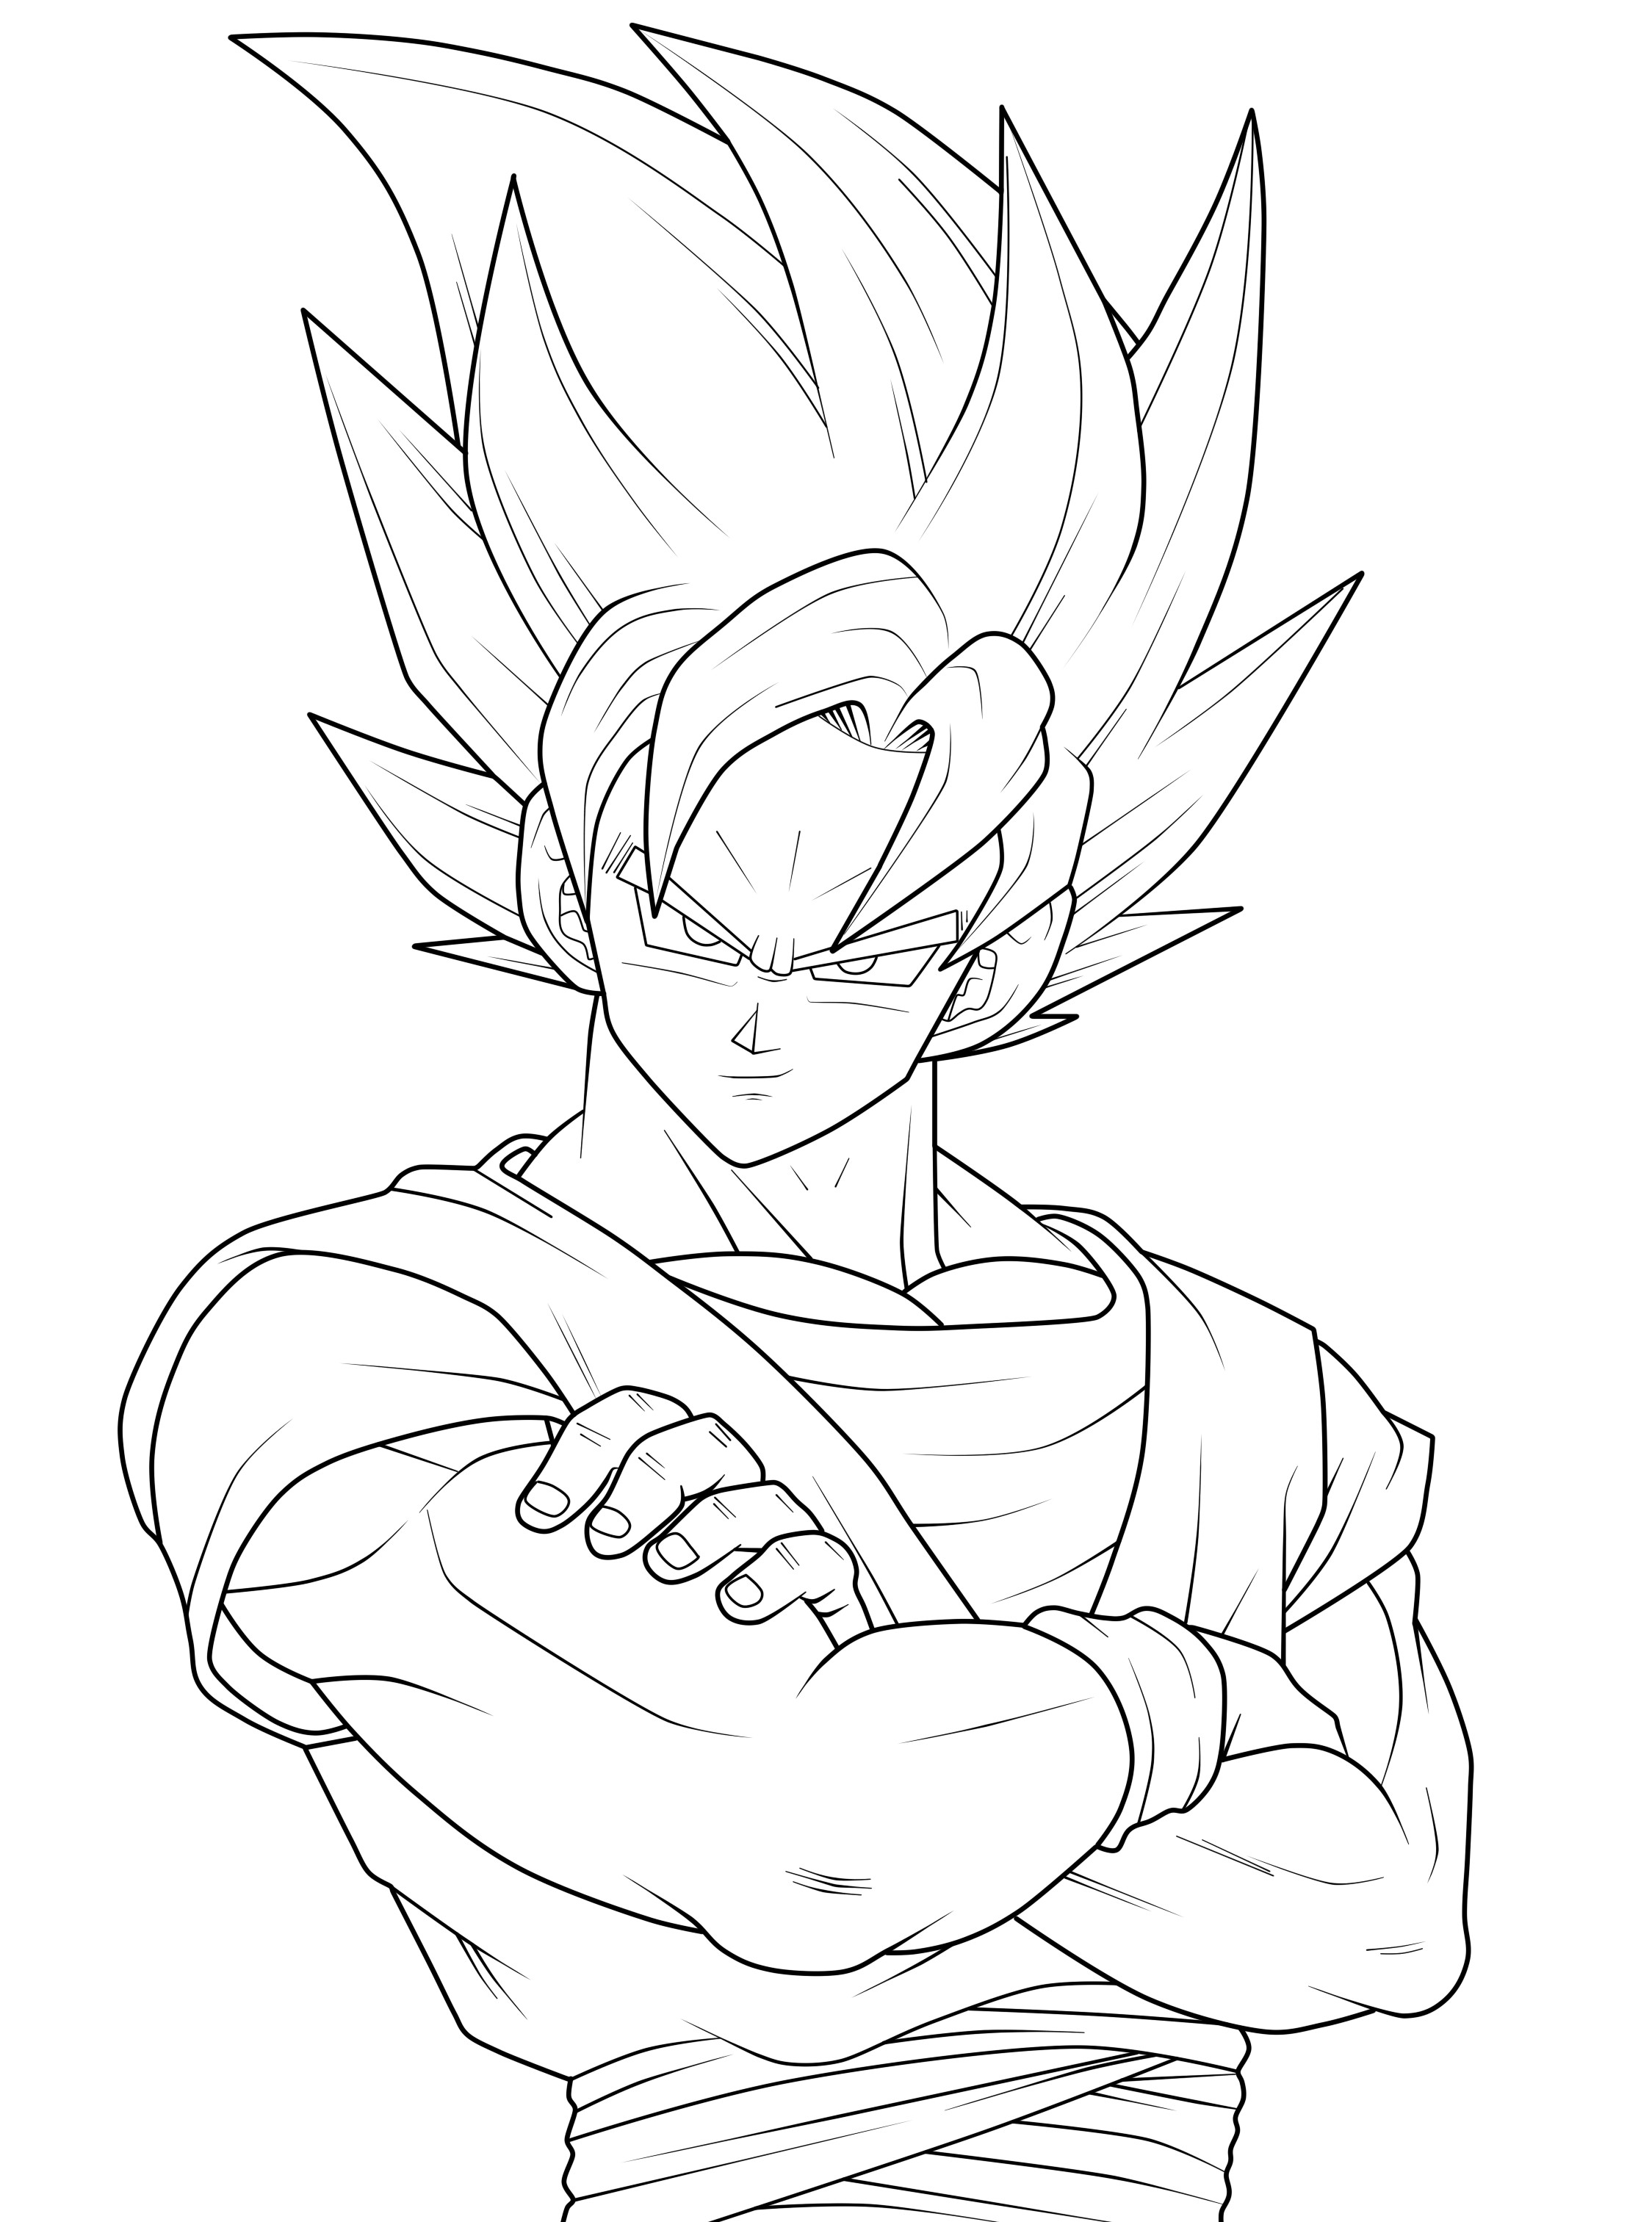 2249x3025 Growth Goku Super Saiyan Coloring Pages Vege